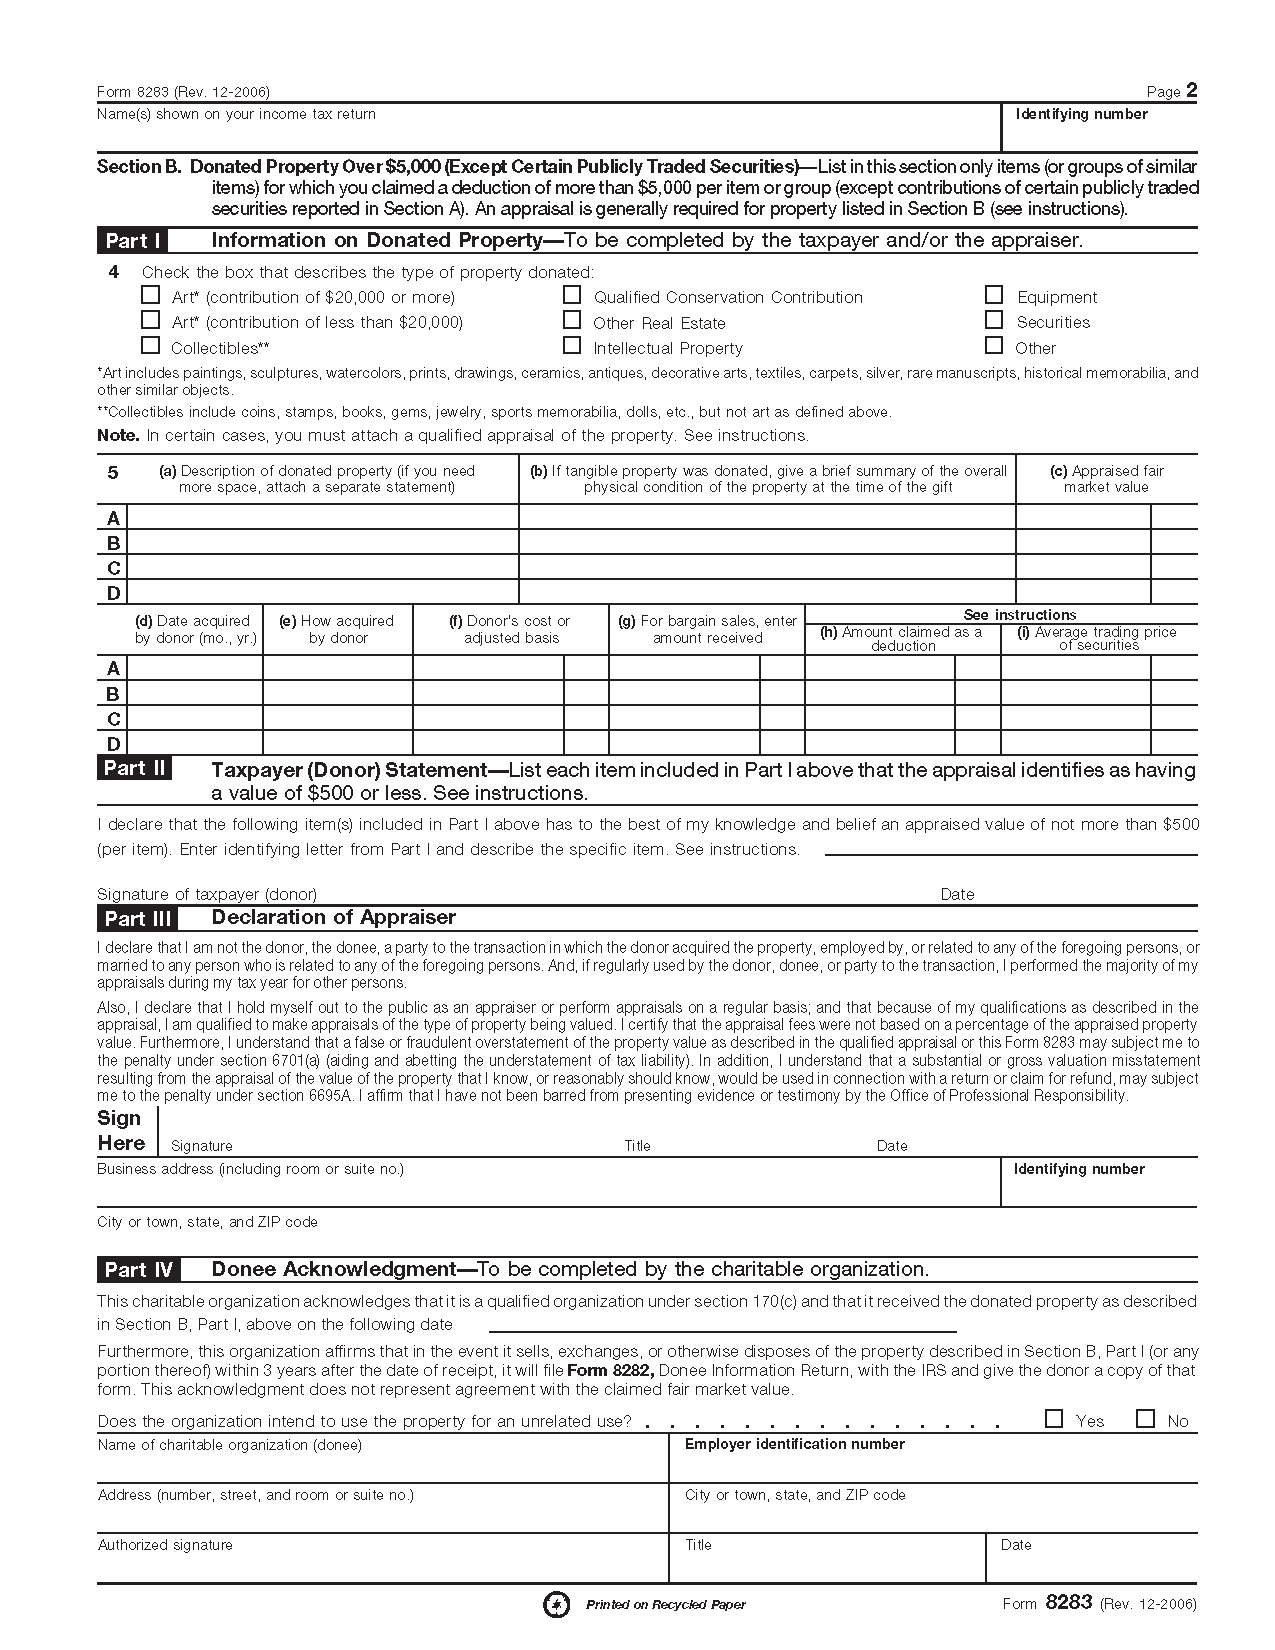 Form 8283 Noncash Charitable Contributions